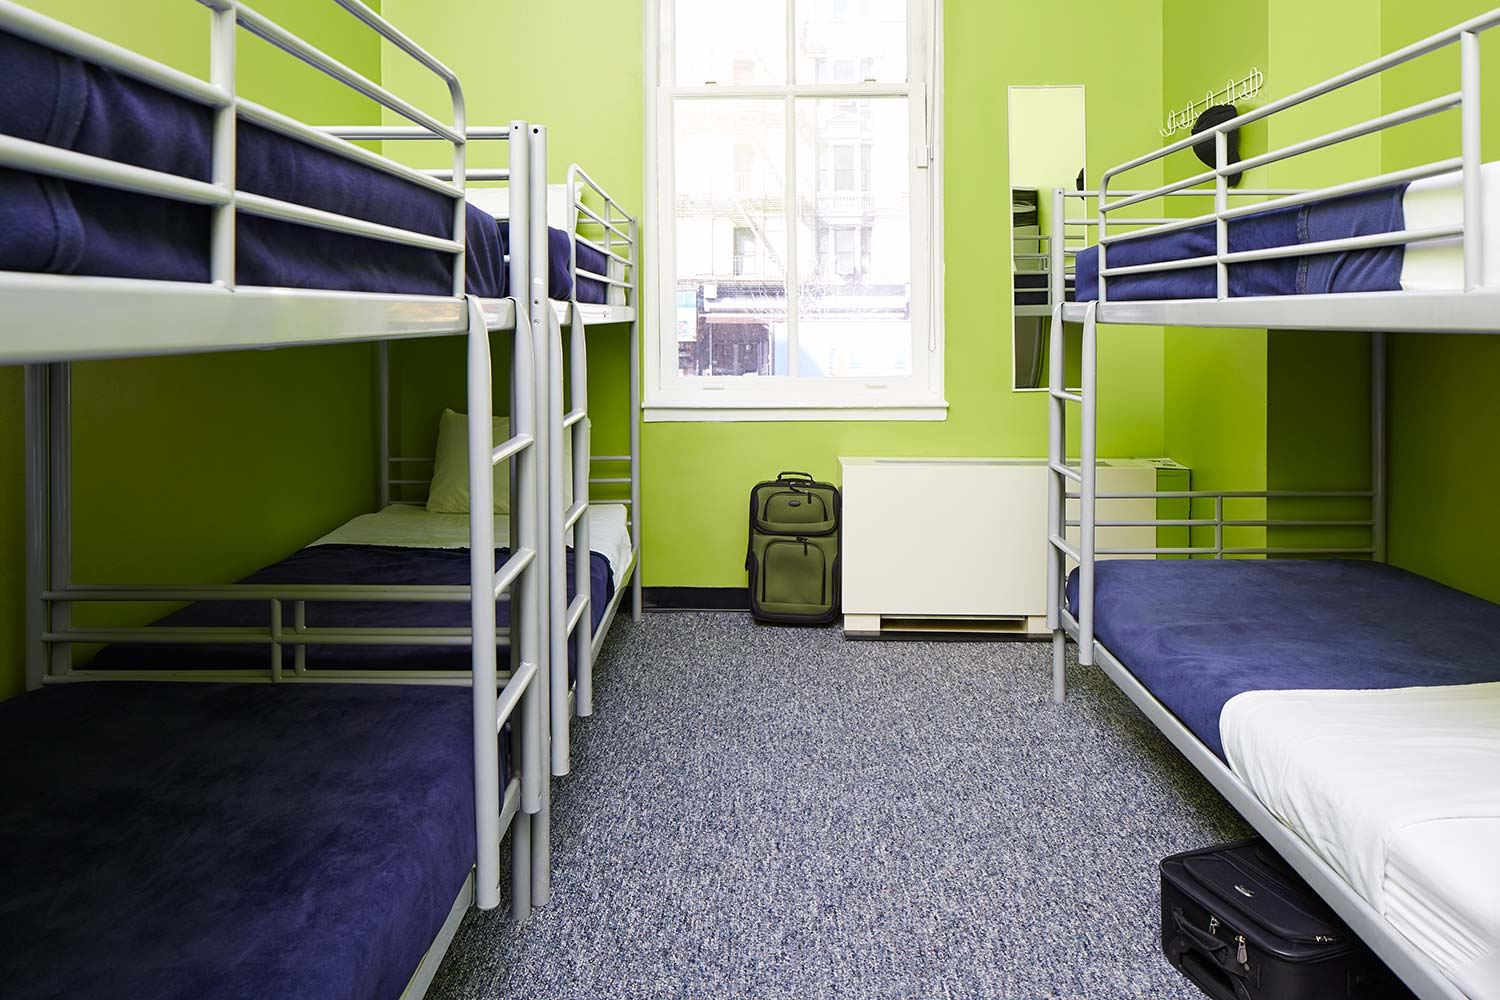 Dorm Room with 4 bunk beds